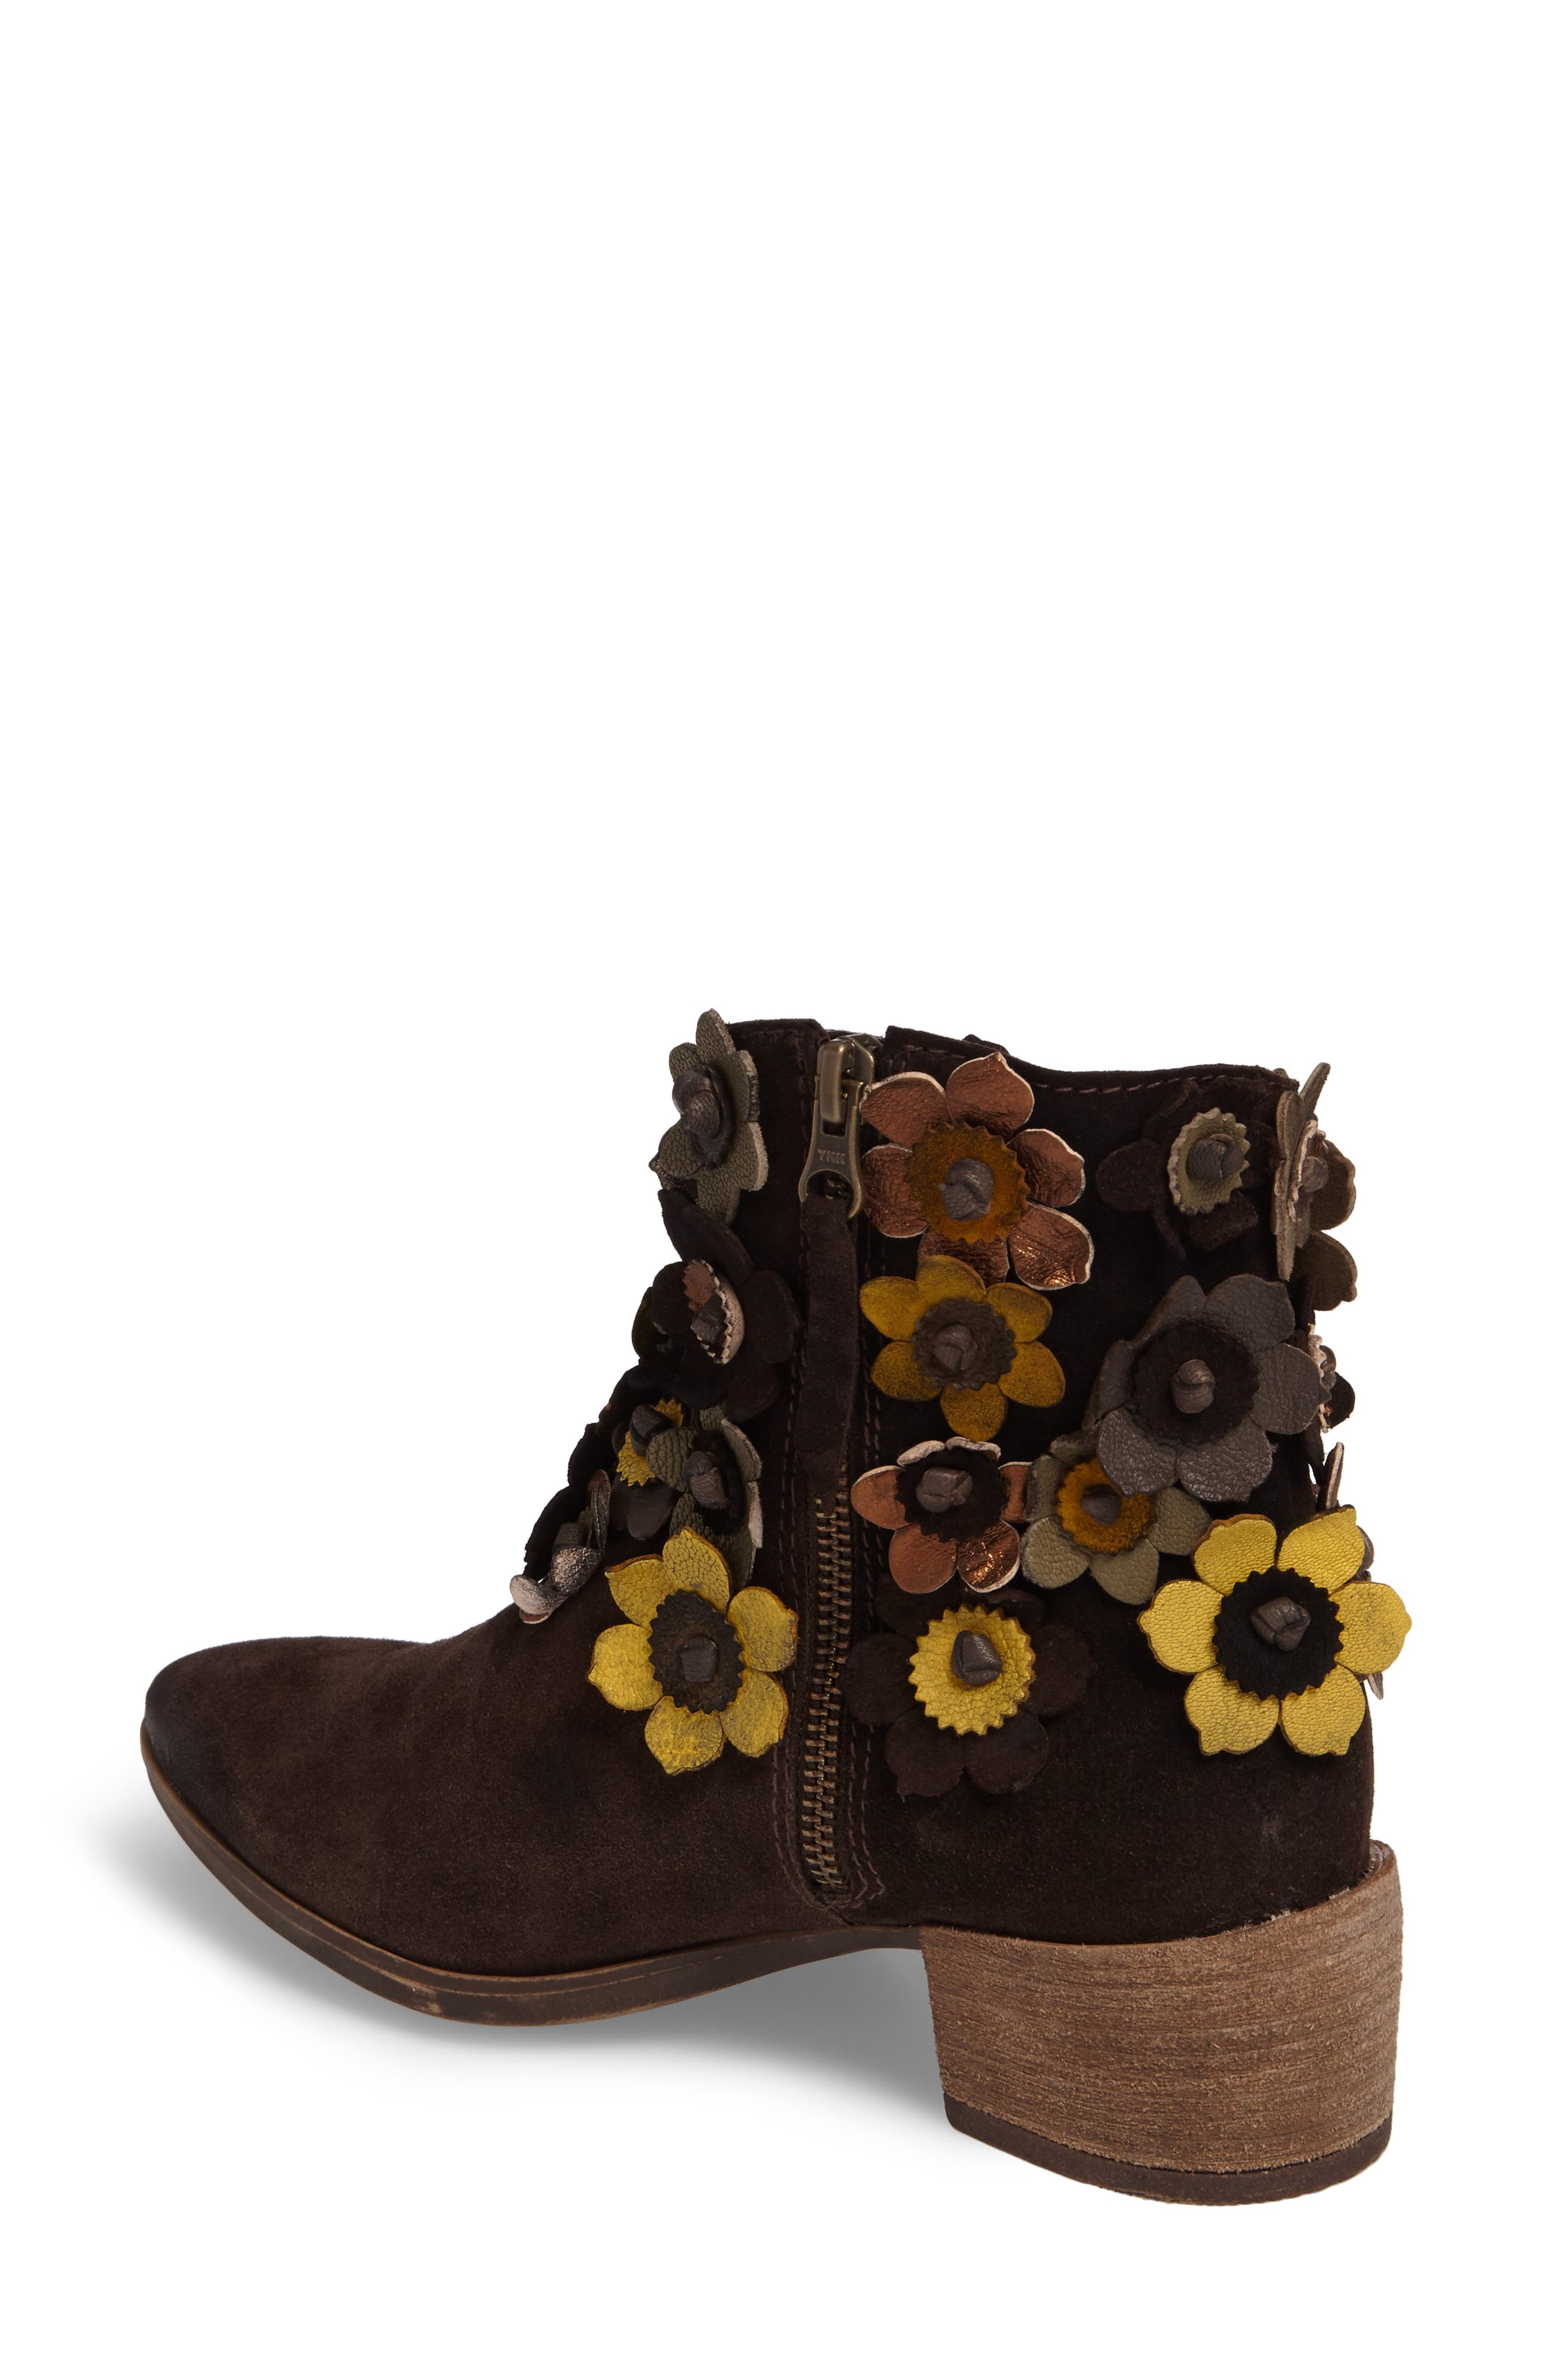 Sunflower Embellished Bootie,                             Alternate thumbnail 2, color,                             BROWN SUEDE